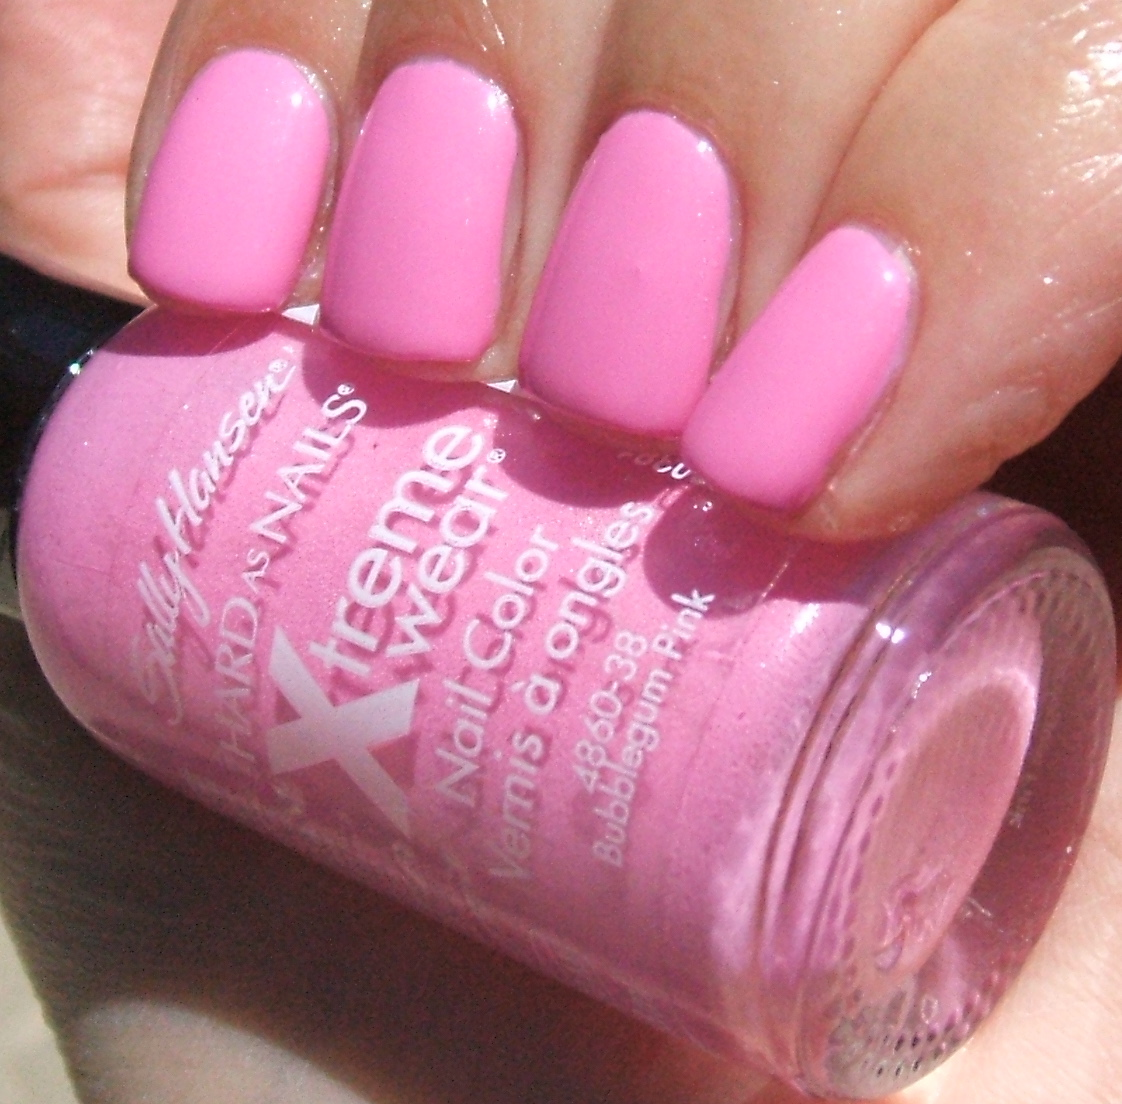 Bubble Gum Nail Art: Pink Wednesday... With Nail Art!